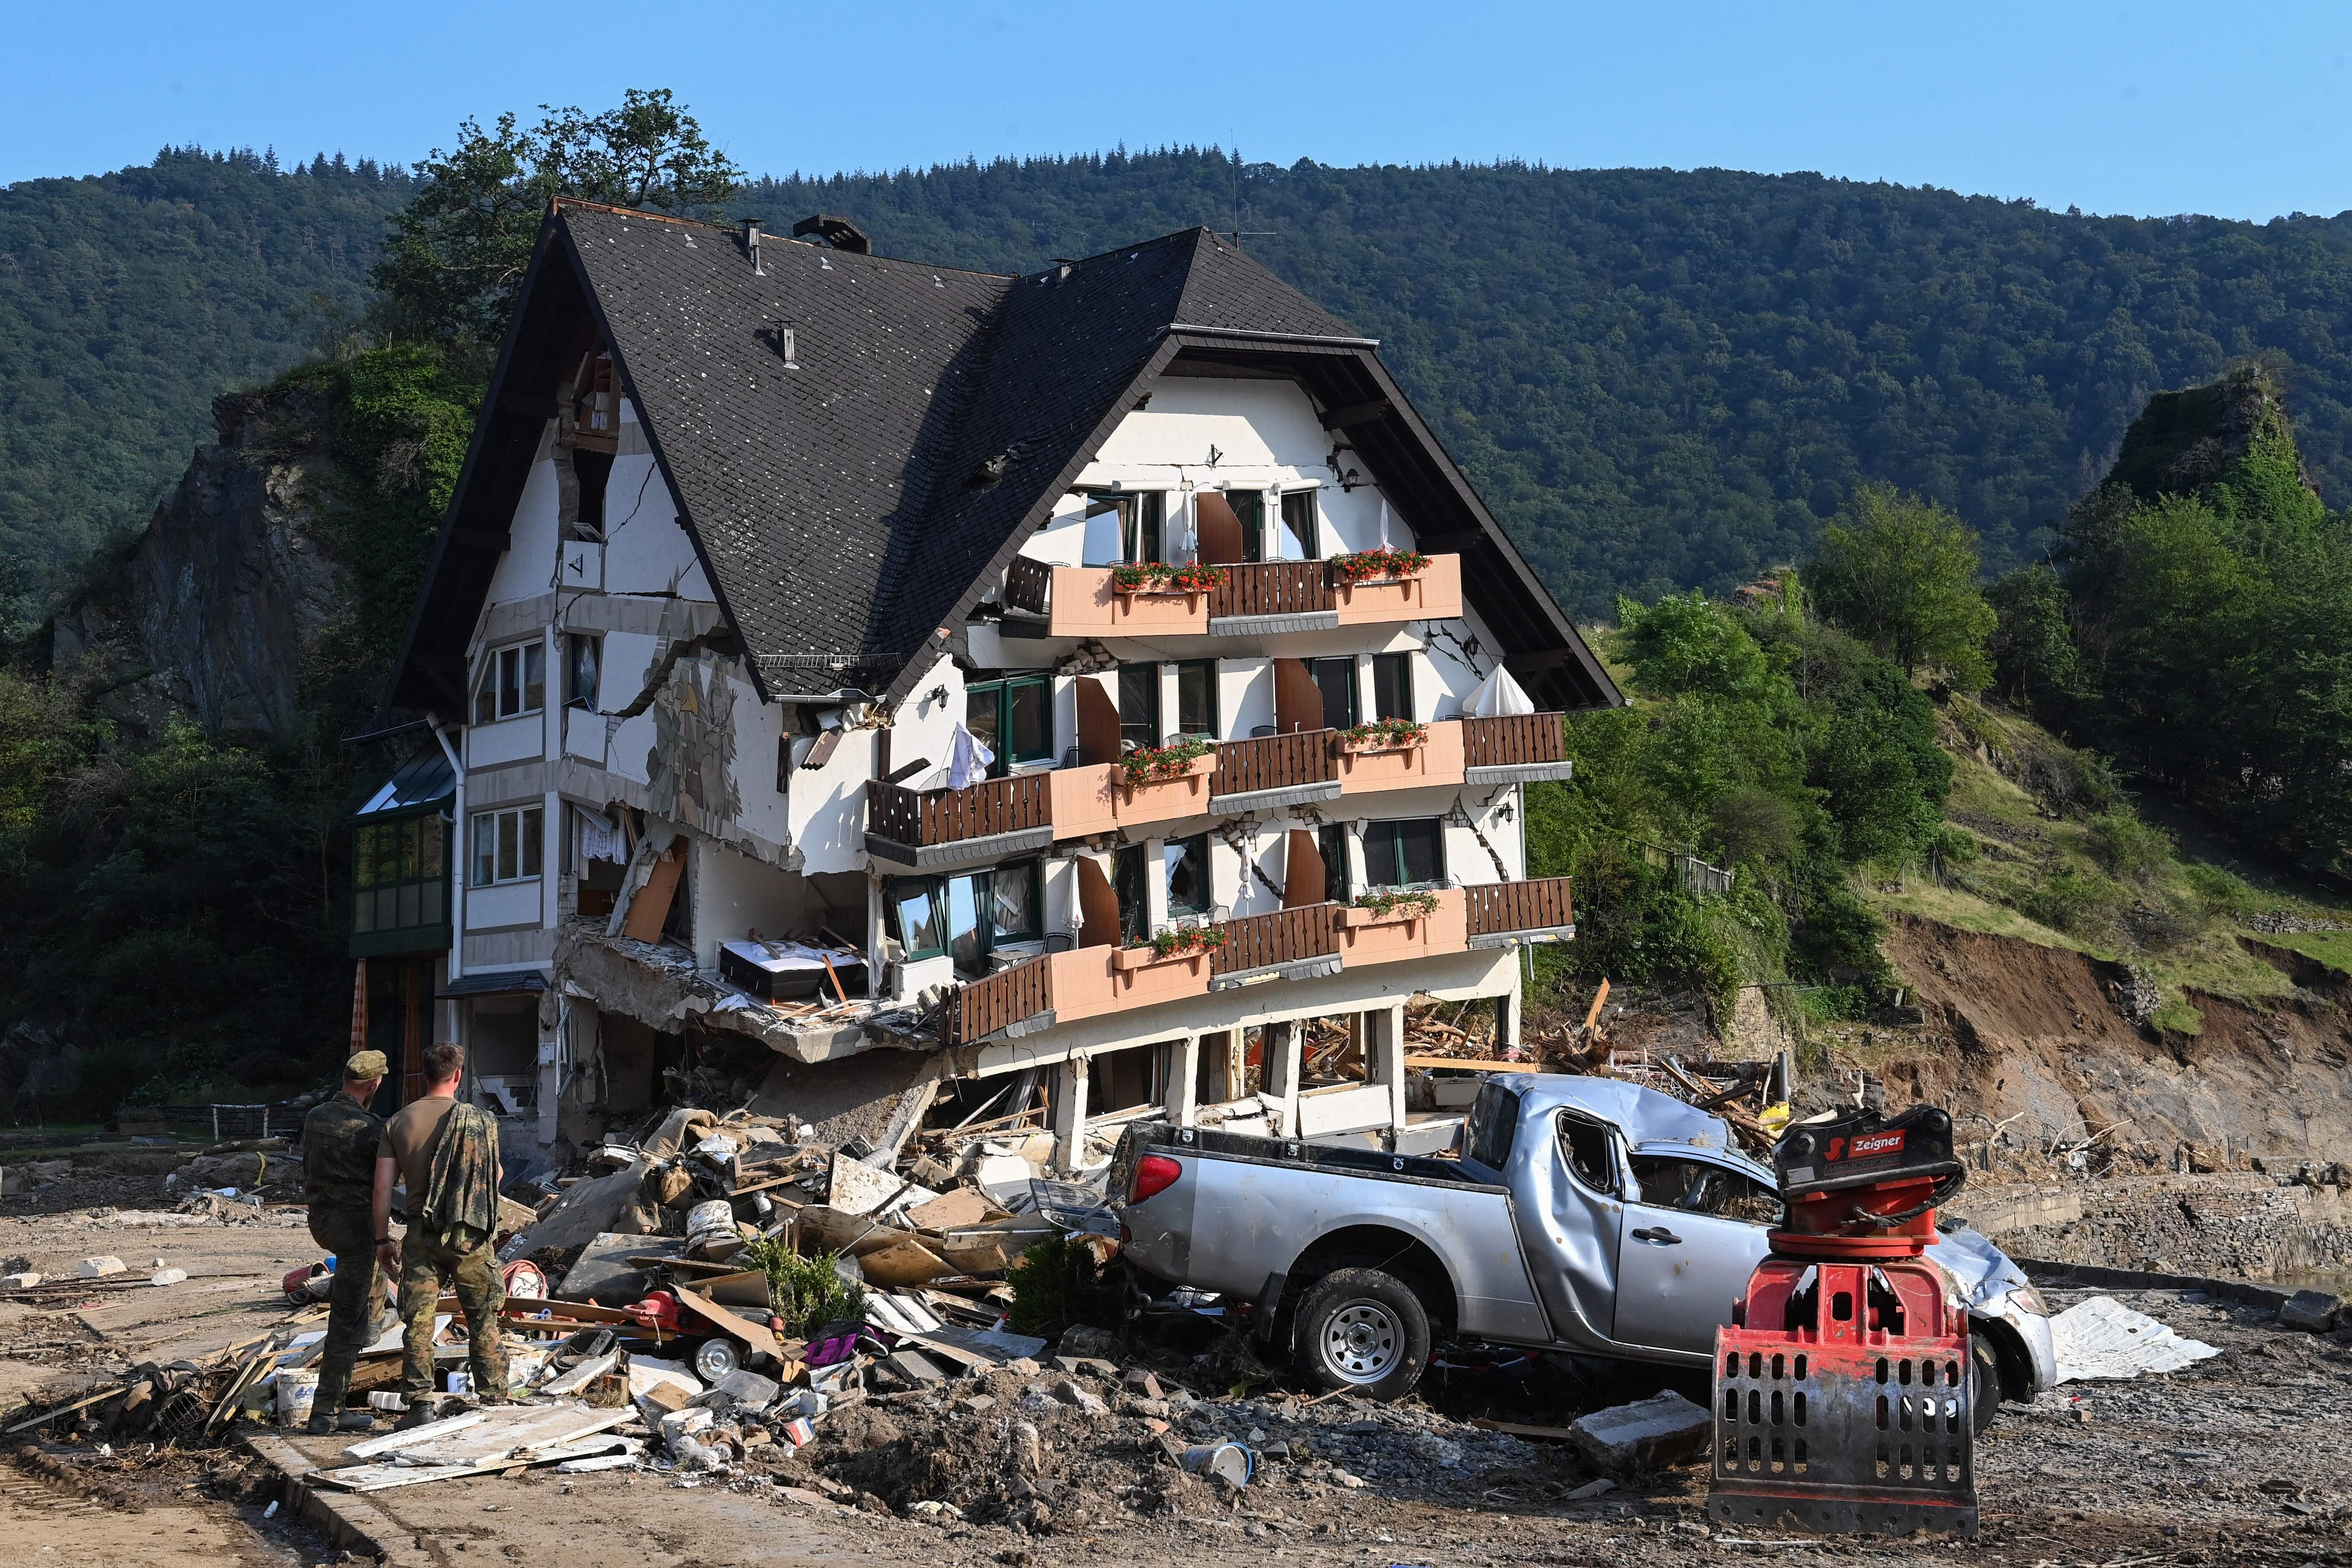 Military personnel stand beside a ruined country guest house in Laach, Germany.